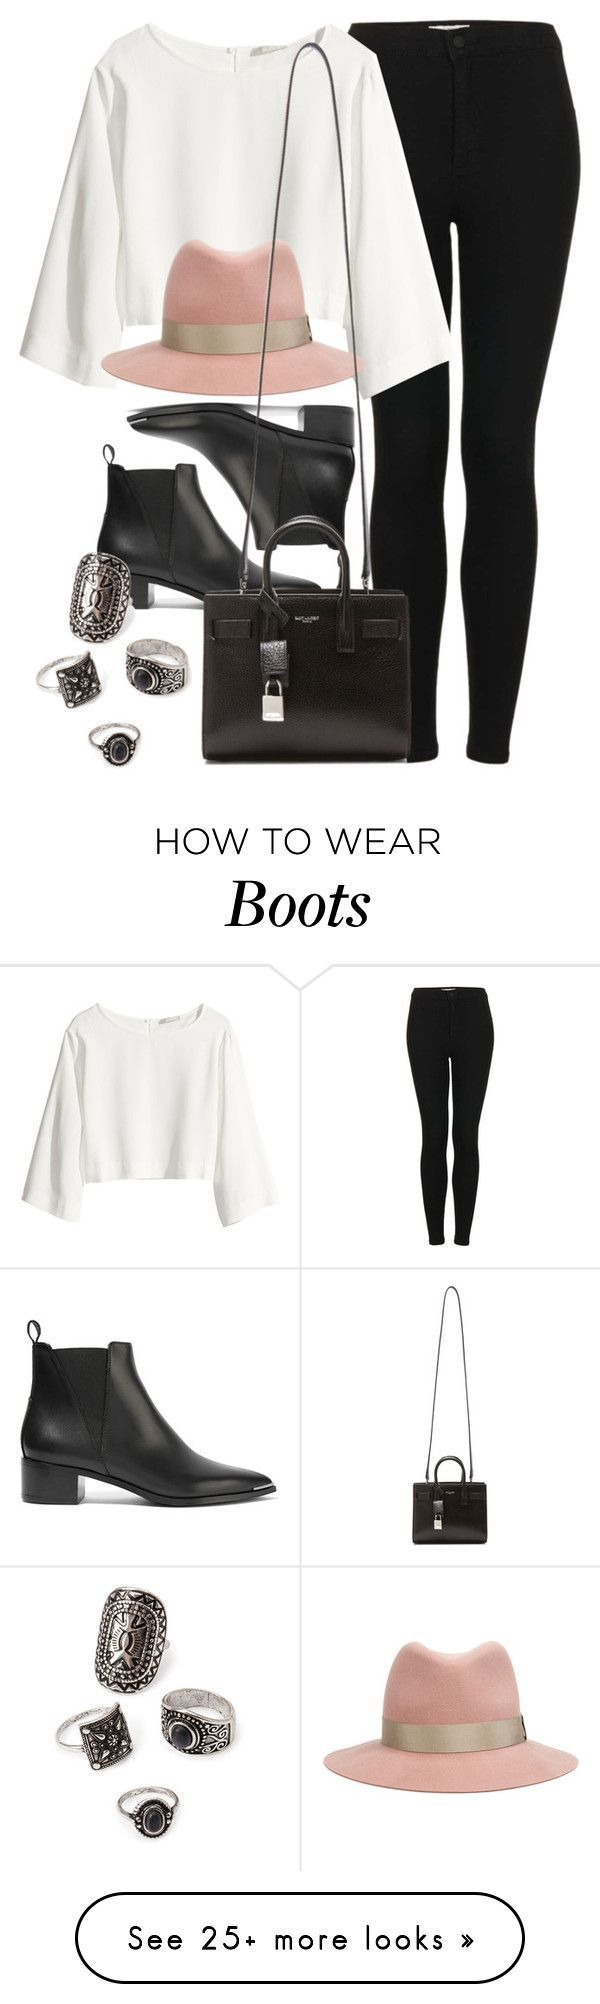 """""""Style #10584"""" by vany-alvarado on Polyvore featuring Topshop, H&M, rag & bone, Acne Studios, Yves Saint Laurent and Forever 21"""